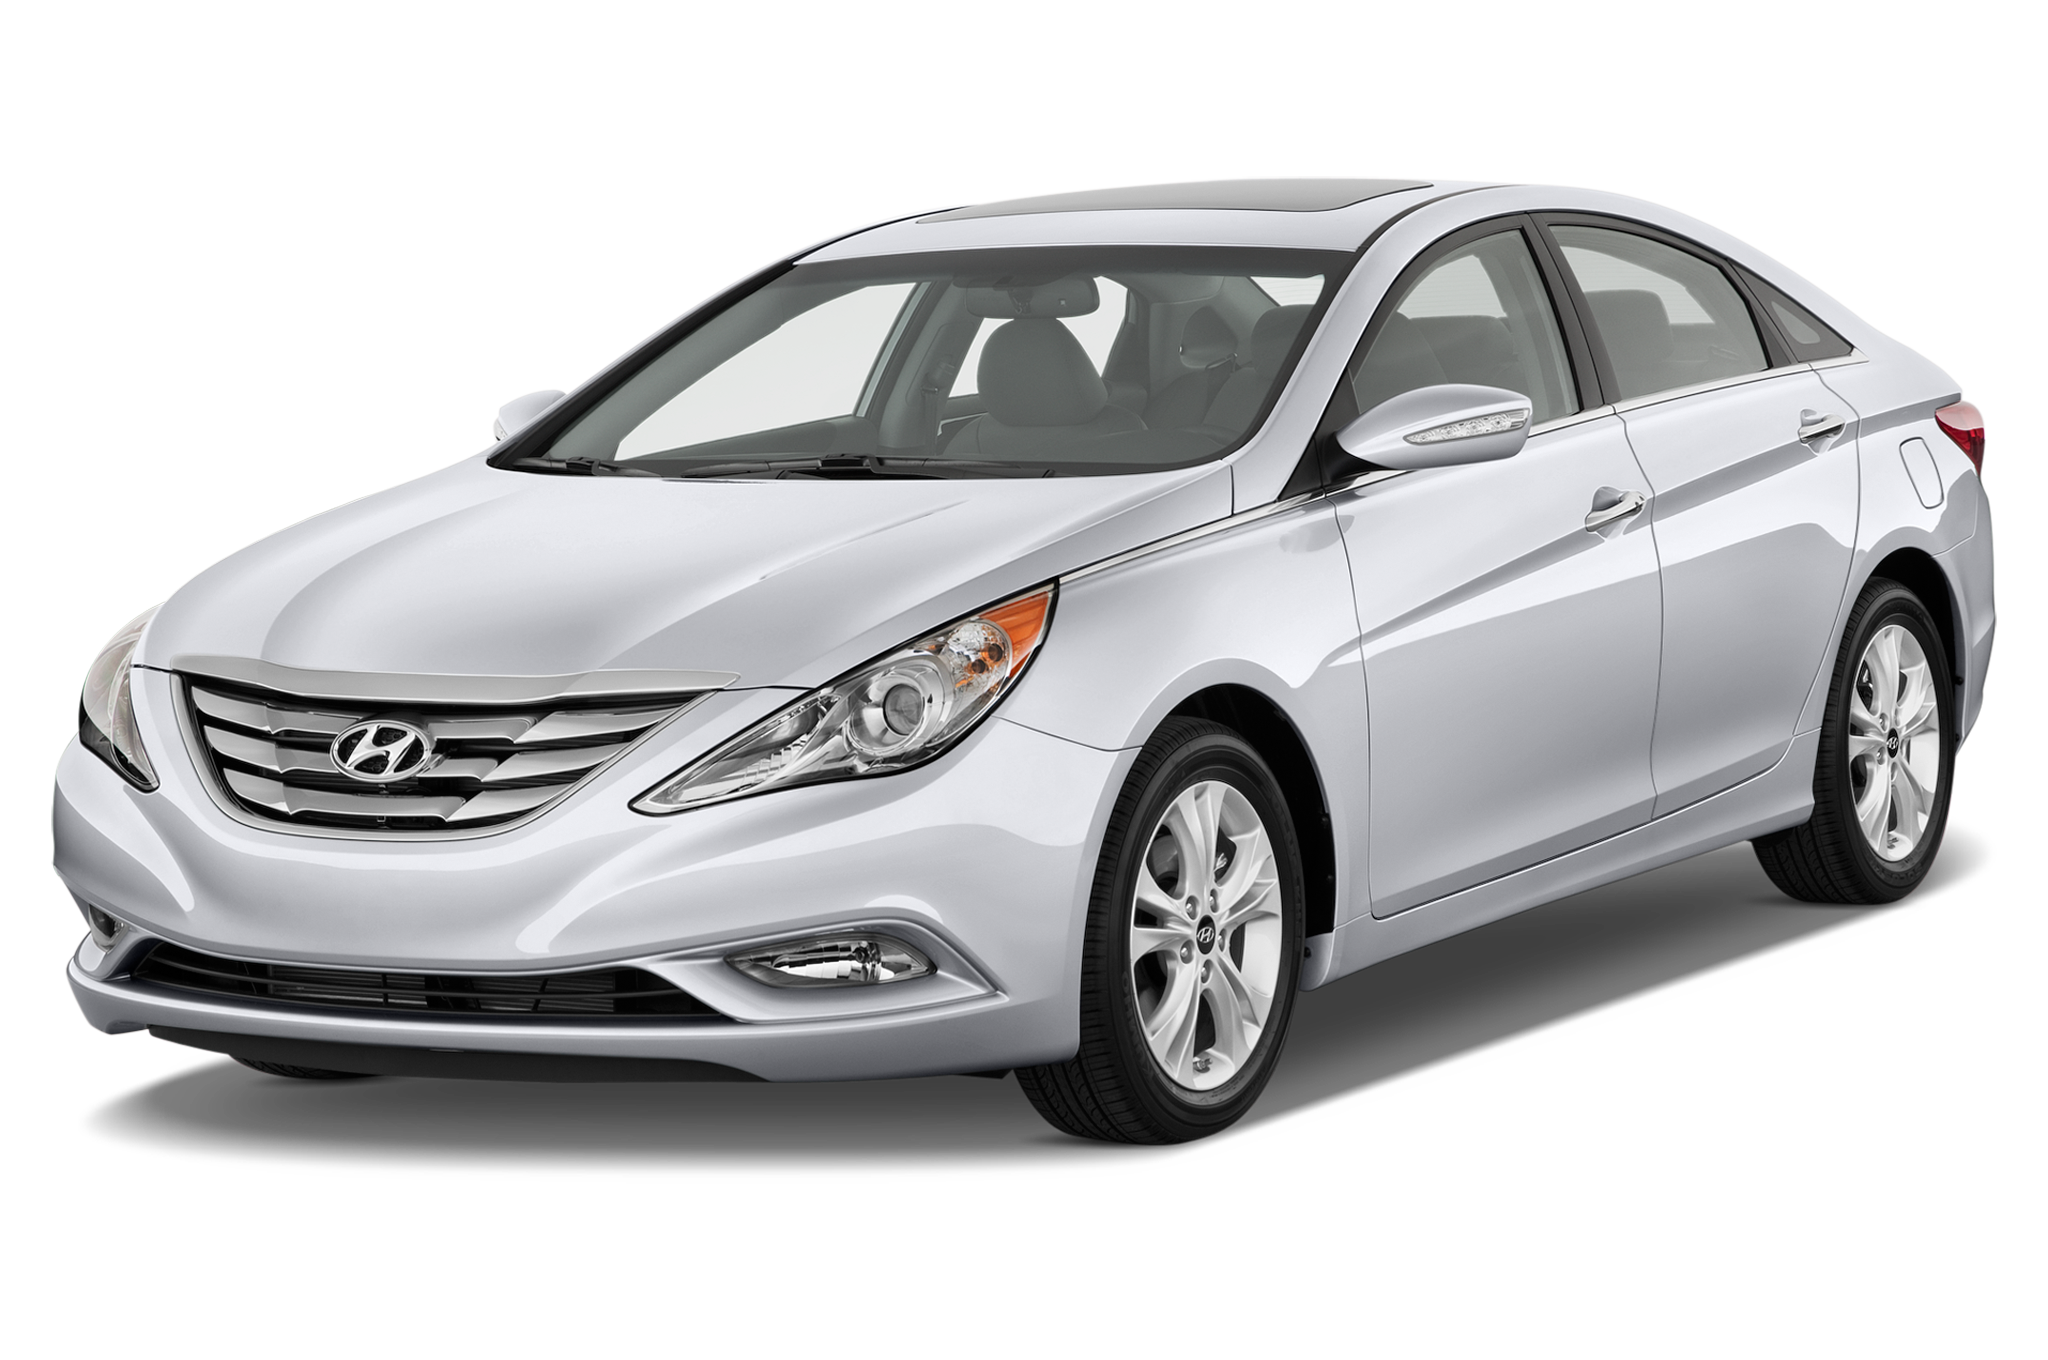 experience autonxt drive limited plug hybrid in automotive hyundai first review sonata stern perry content